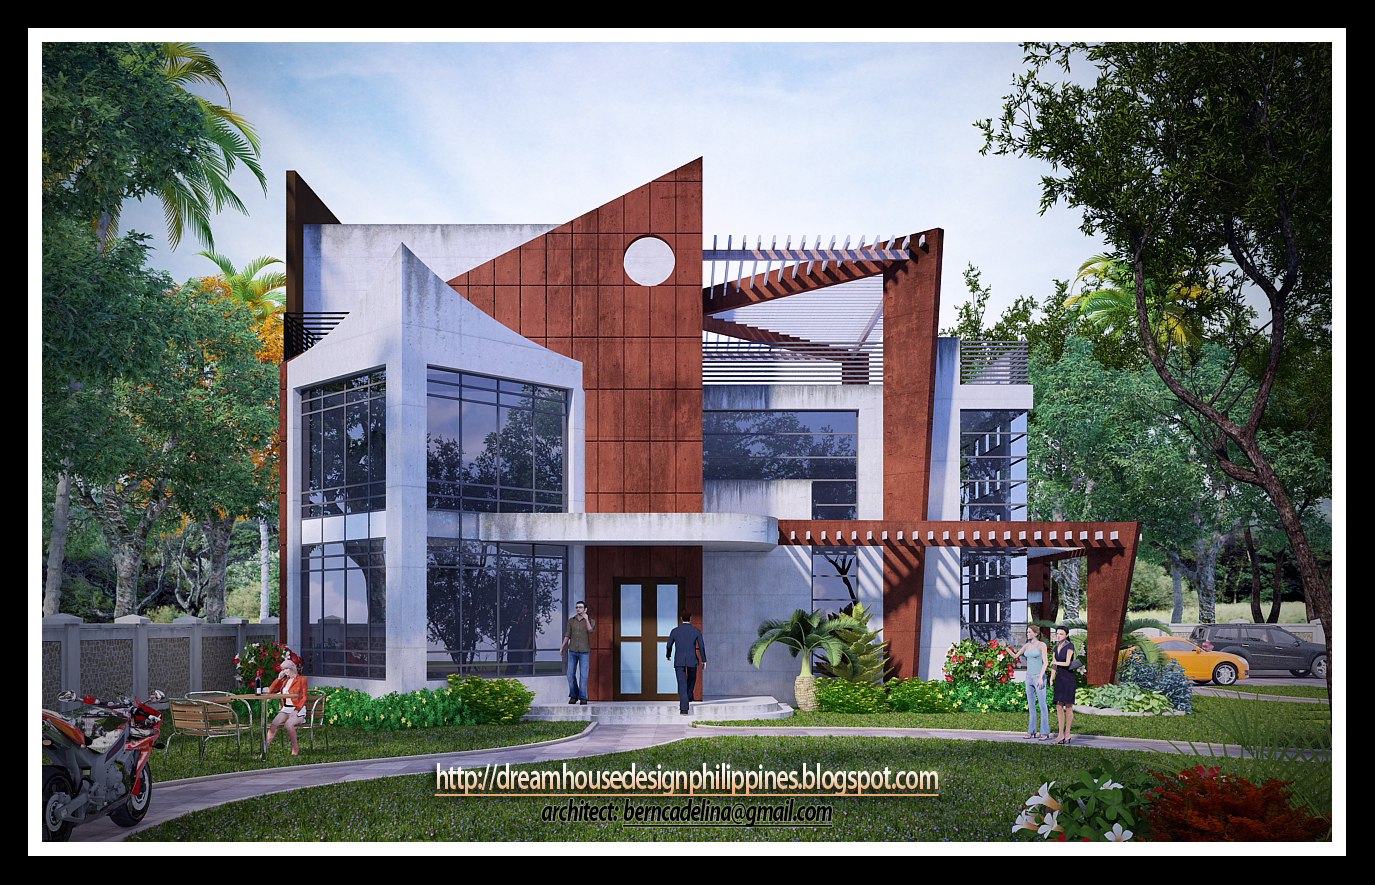 Philippine dream house design may 2011 for Philippine house designs